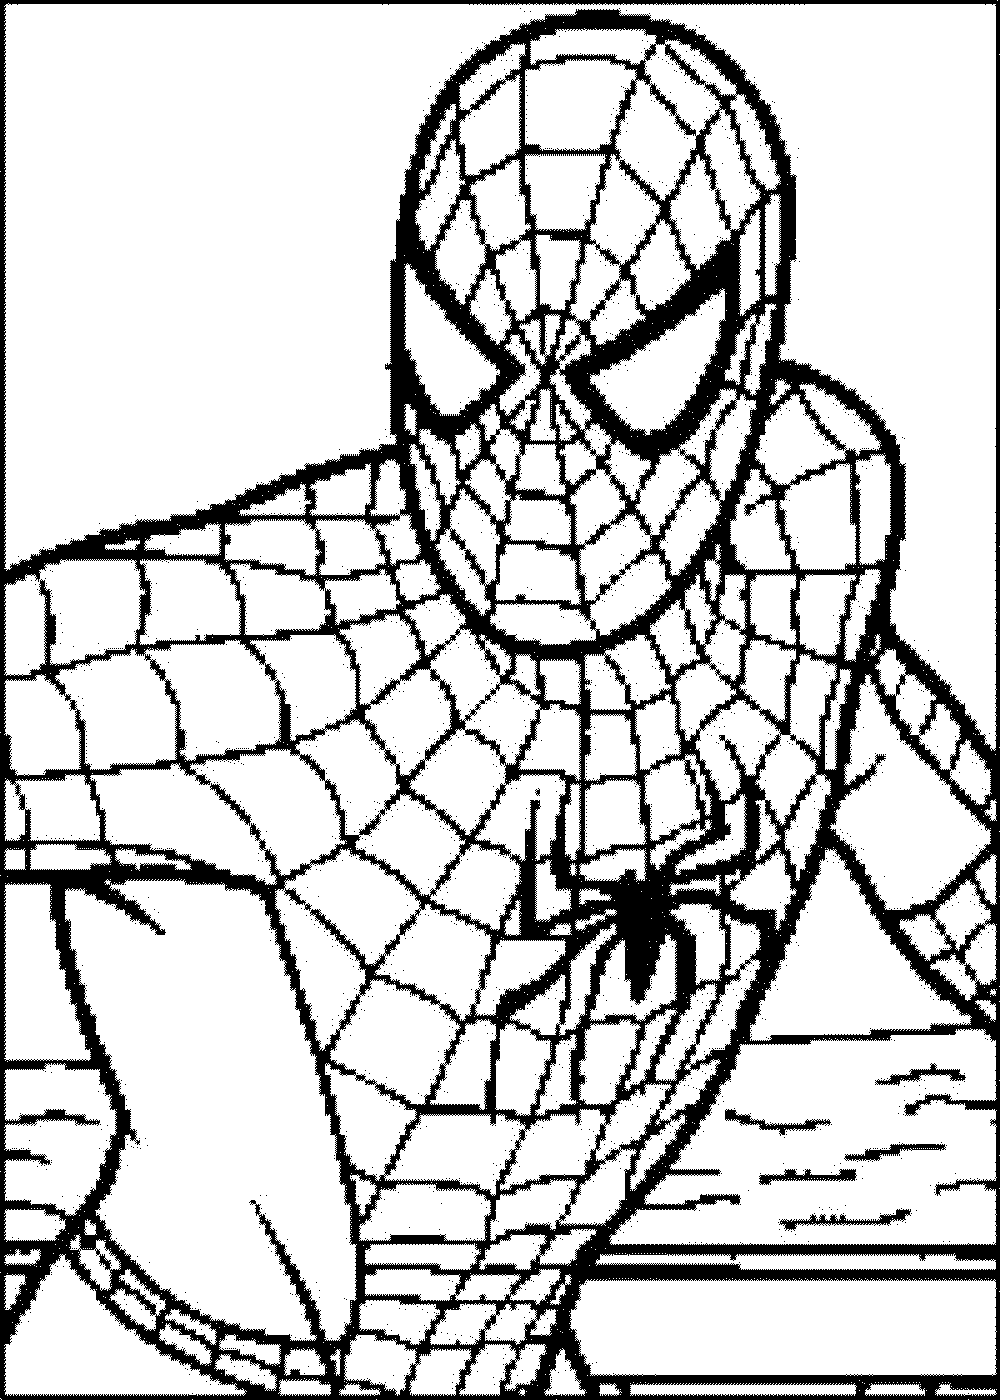 coloring spiderman for kids spiderman to print spiderman kids coloring pages spiderman for coloring kids